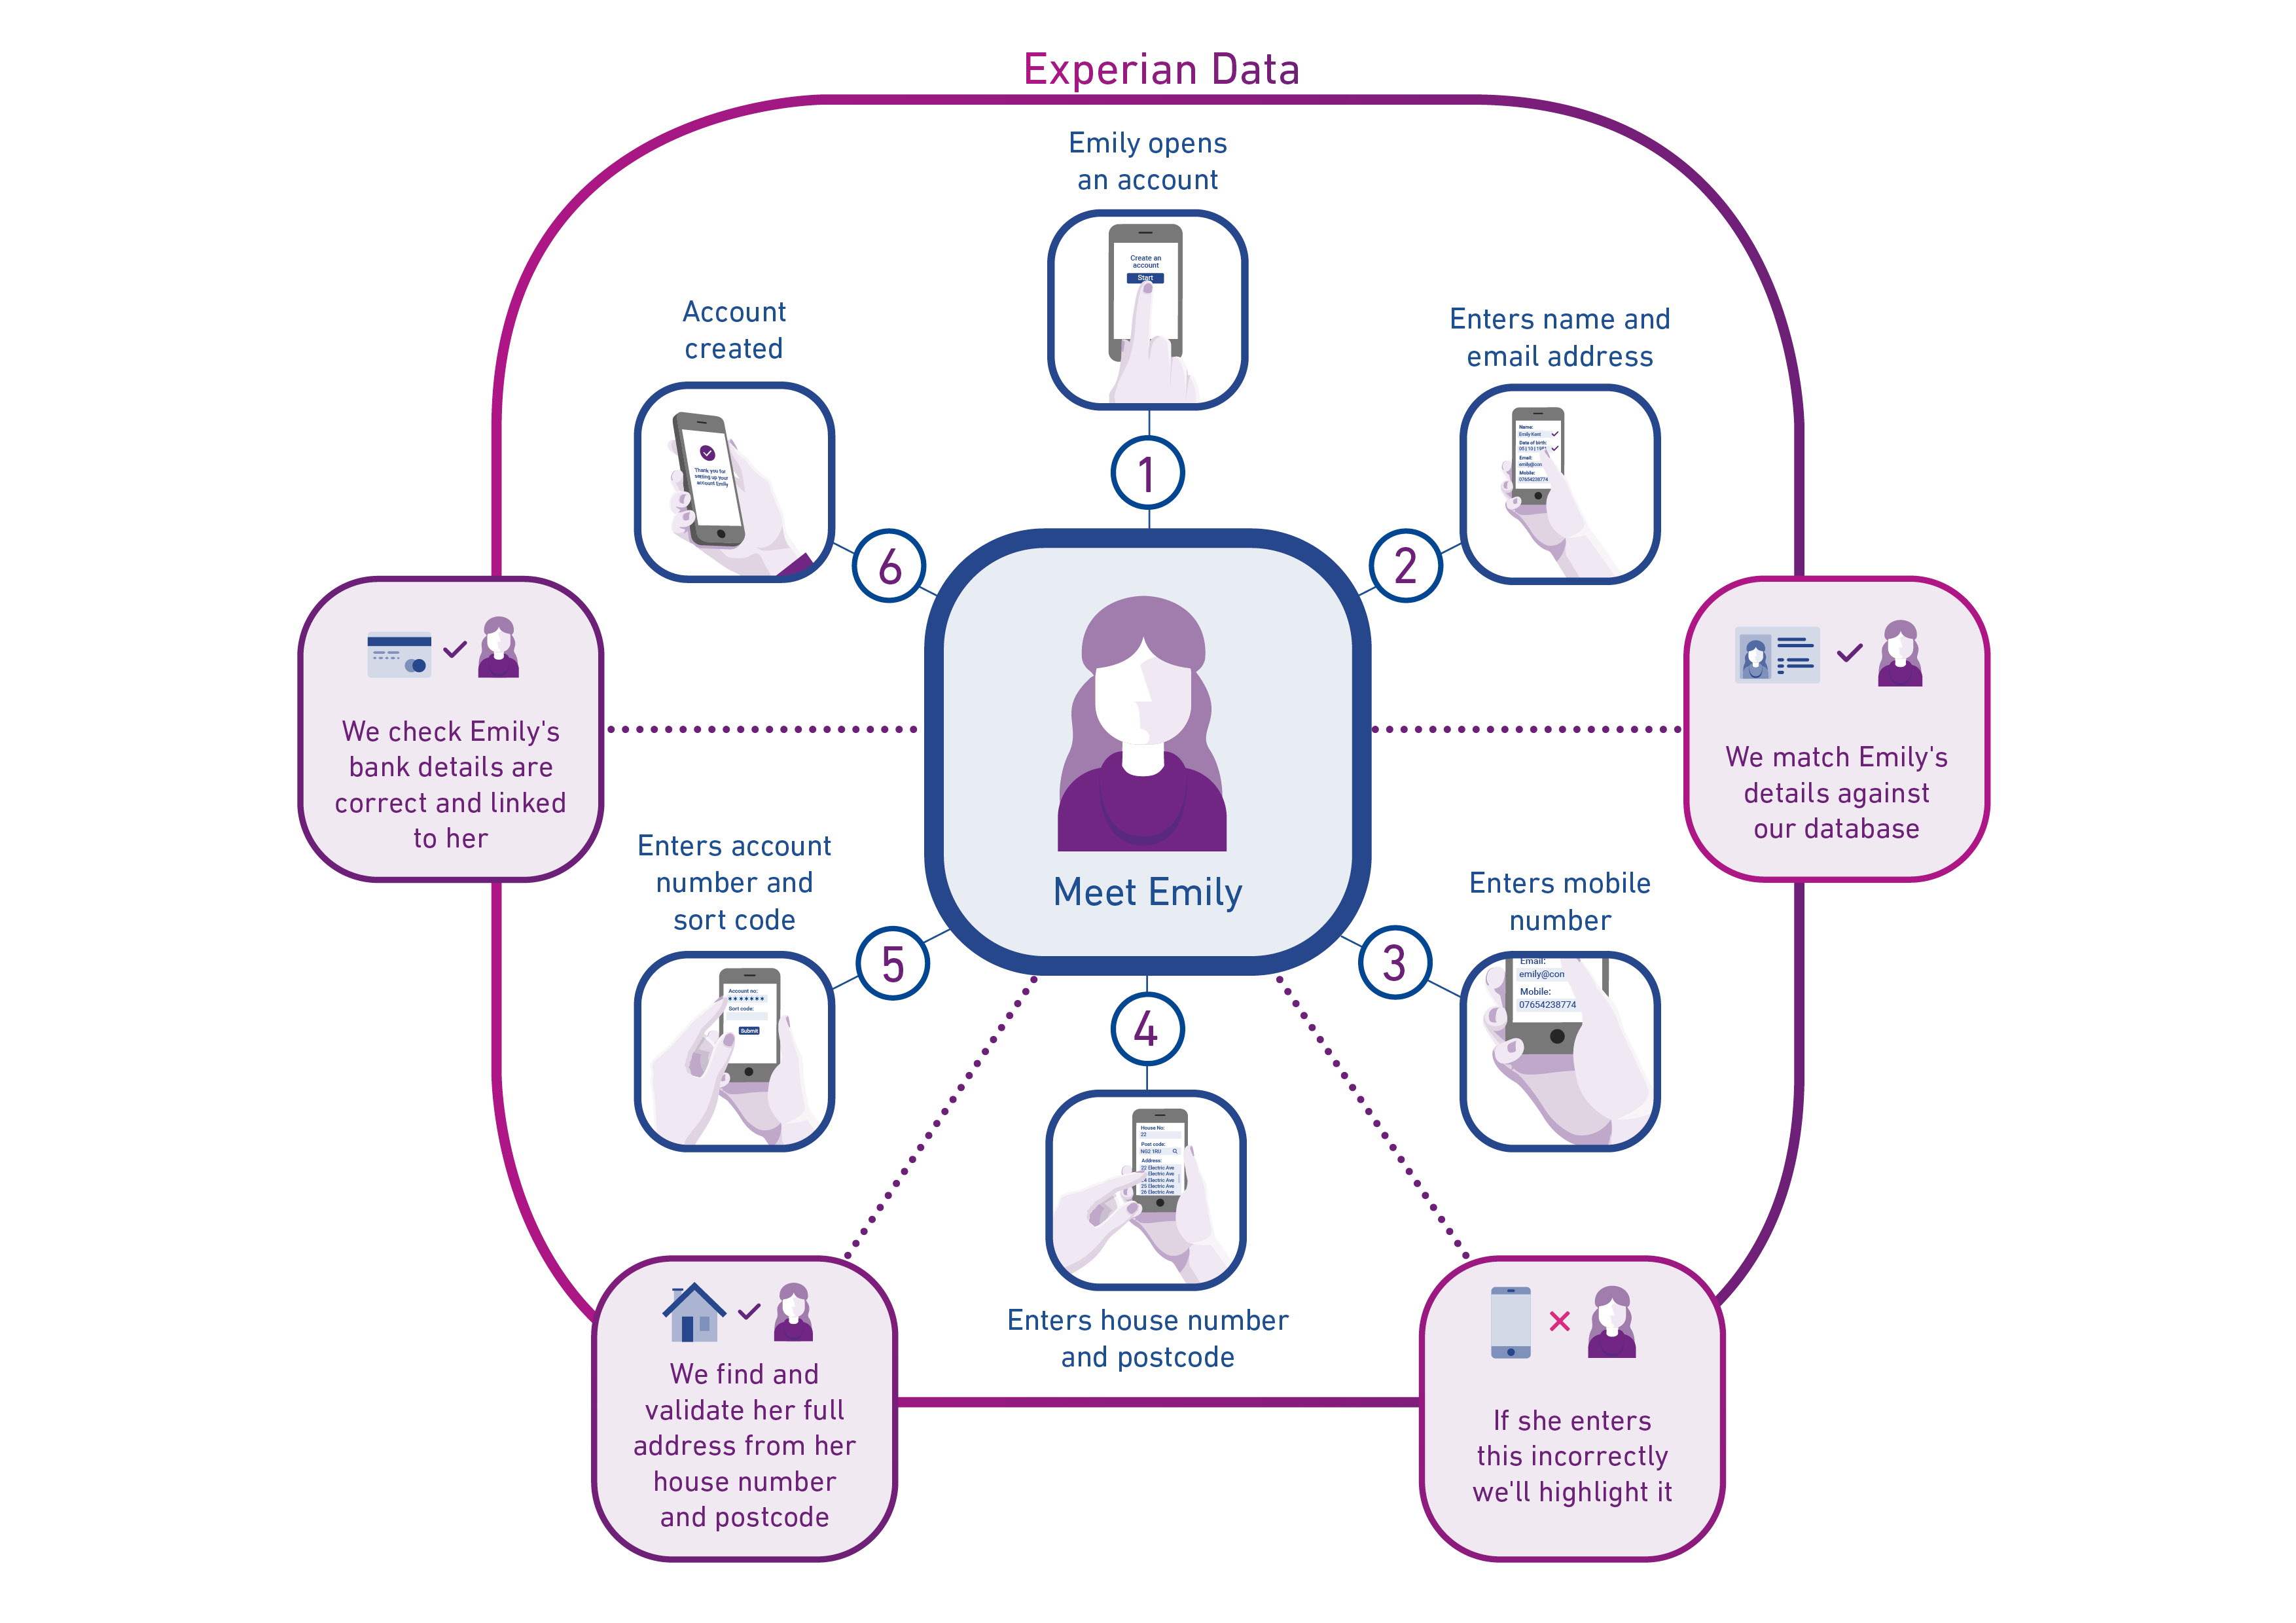 Experian Consumer Onboarding Infographic